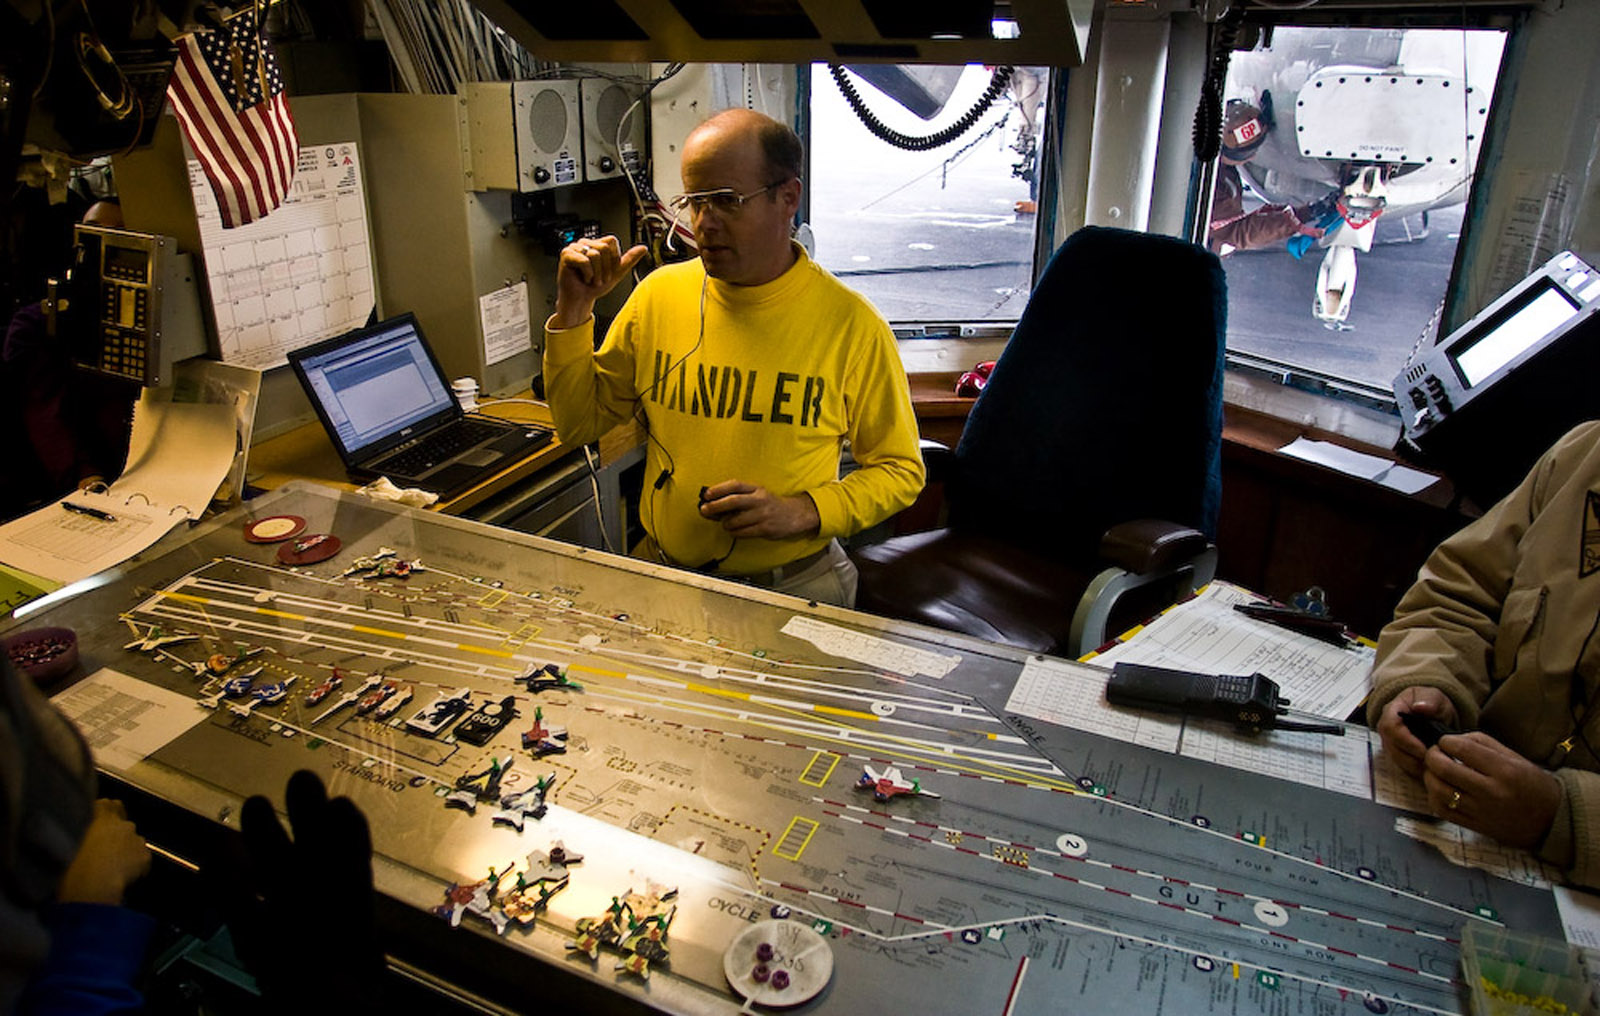 Aircraft carrier models large scale - Aircraft Carrier Models Large Scale Lt Derek Jensen The Aircraft Handling Officer Utilizes A Scale